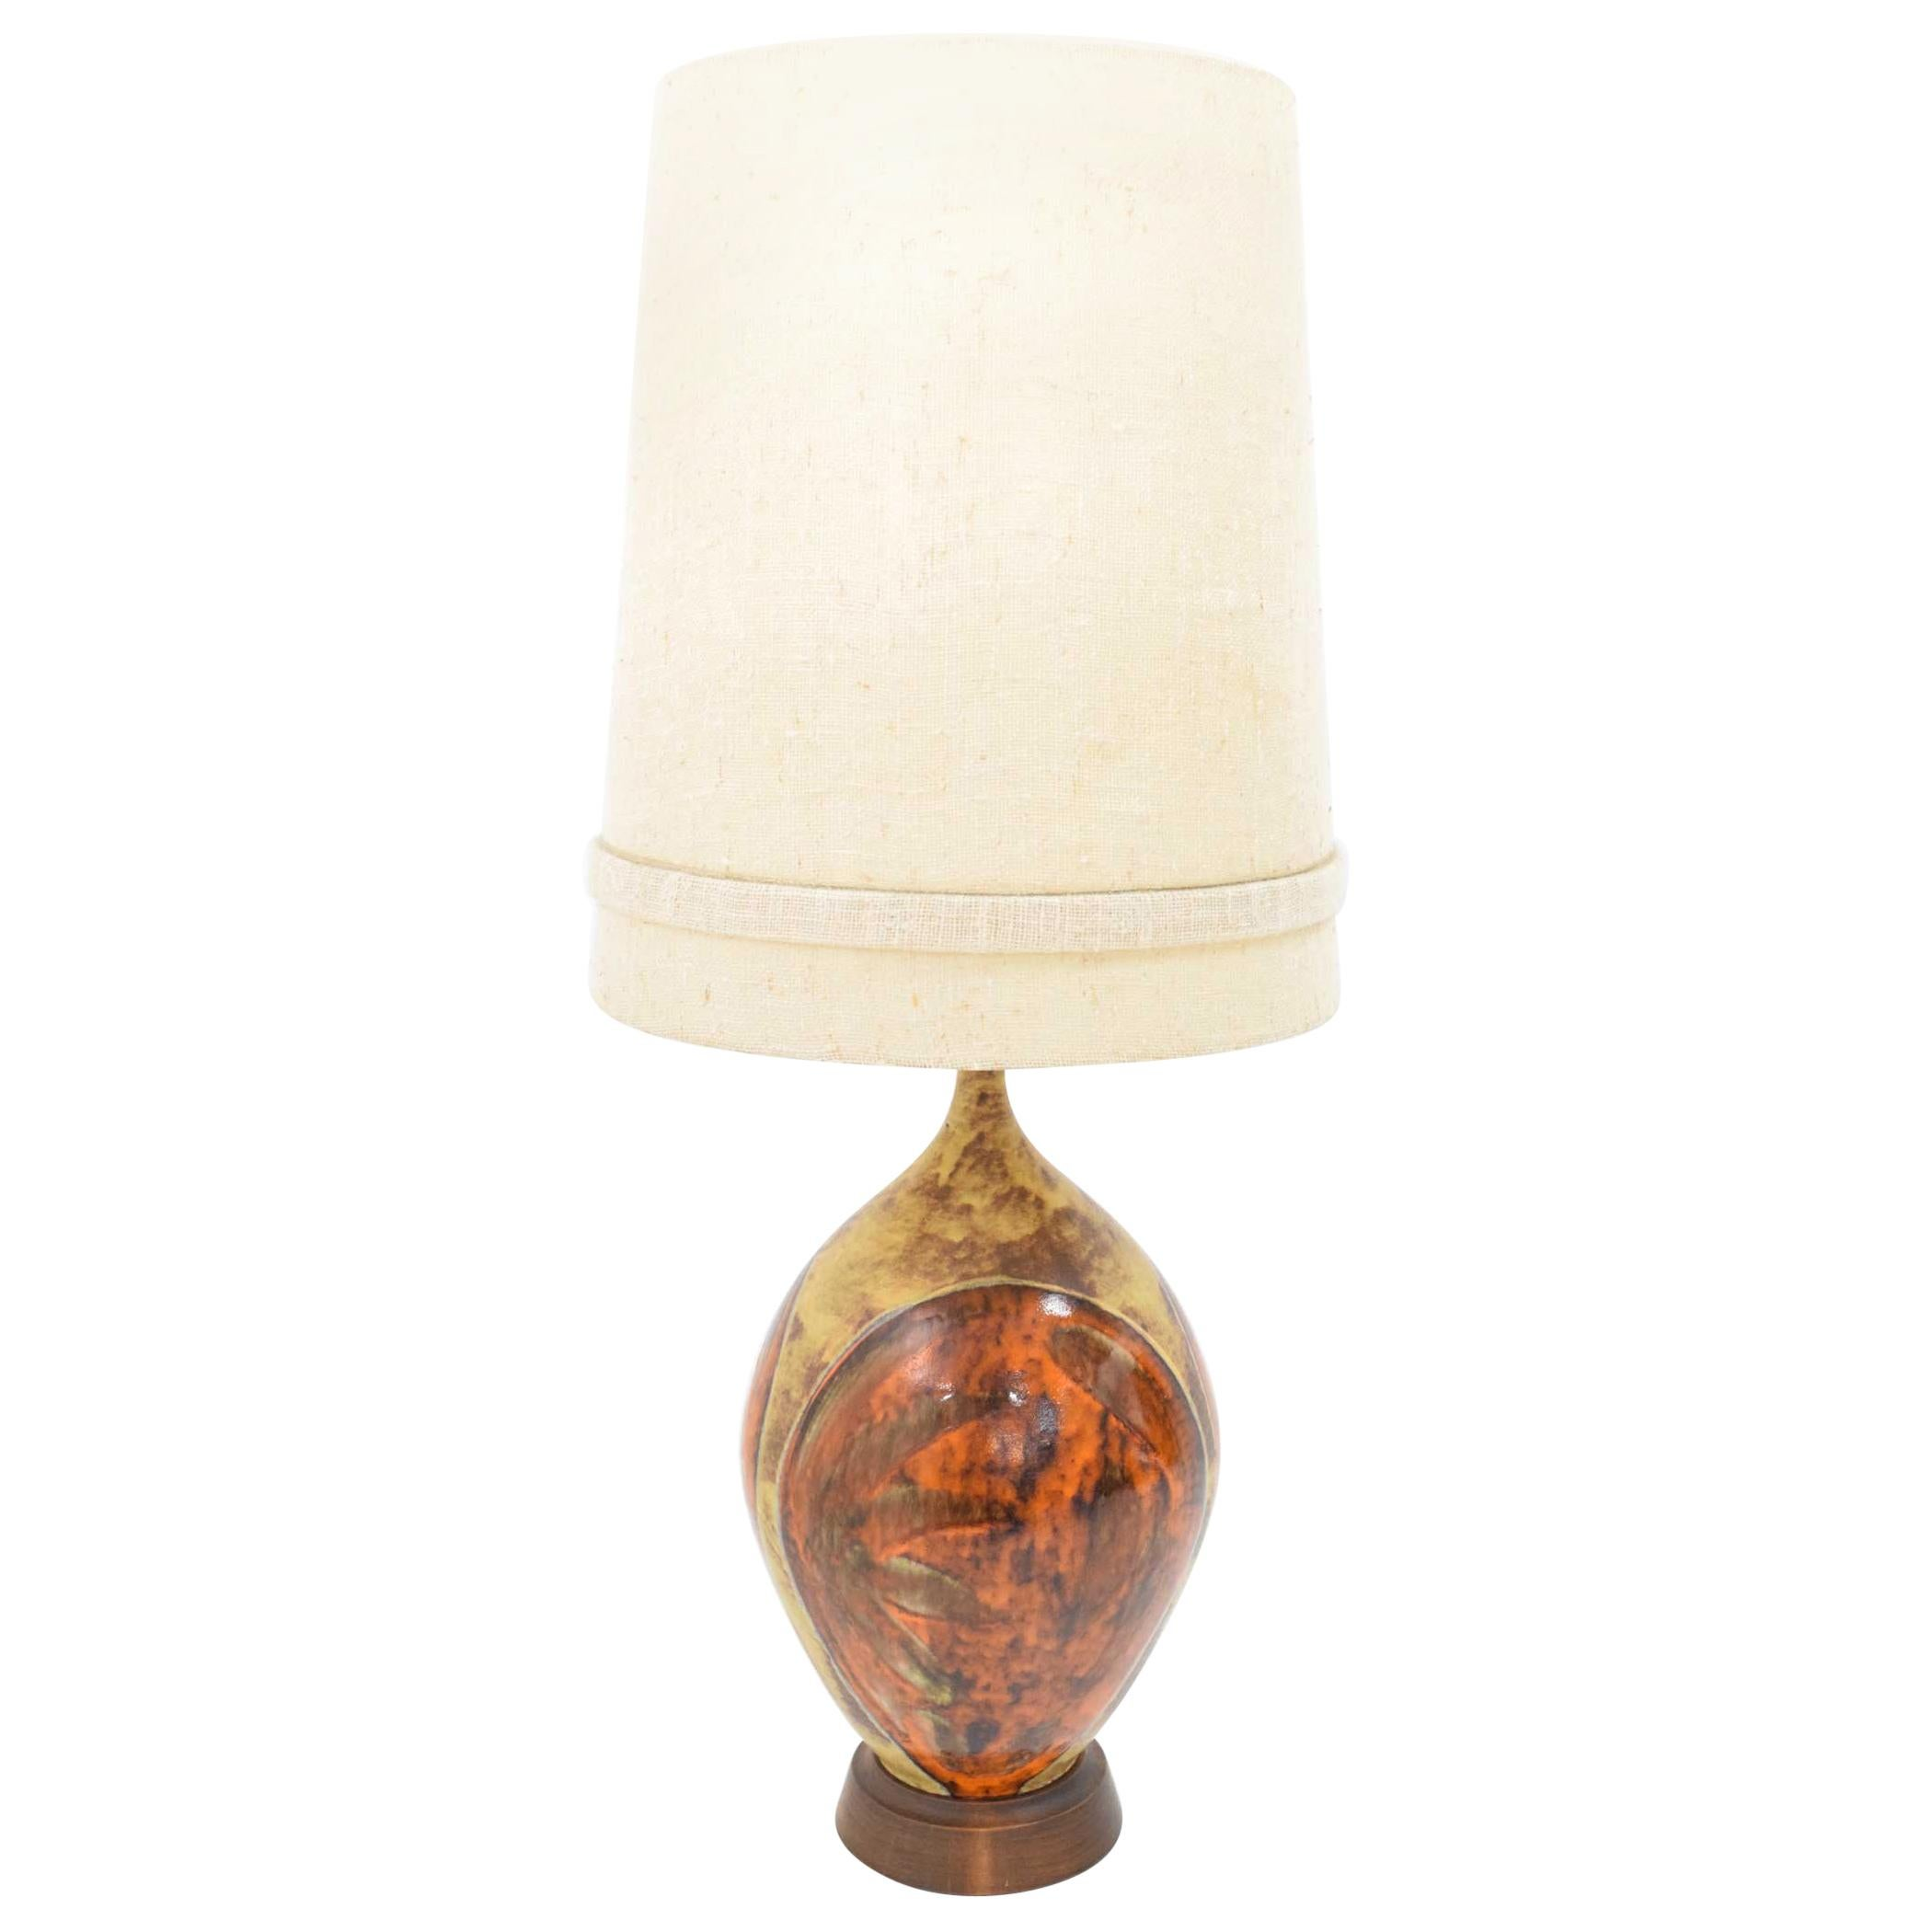 Mid-Century Modern Ceramic Table Lamp in Orange and Brown